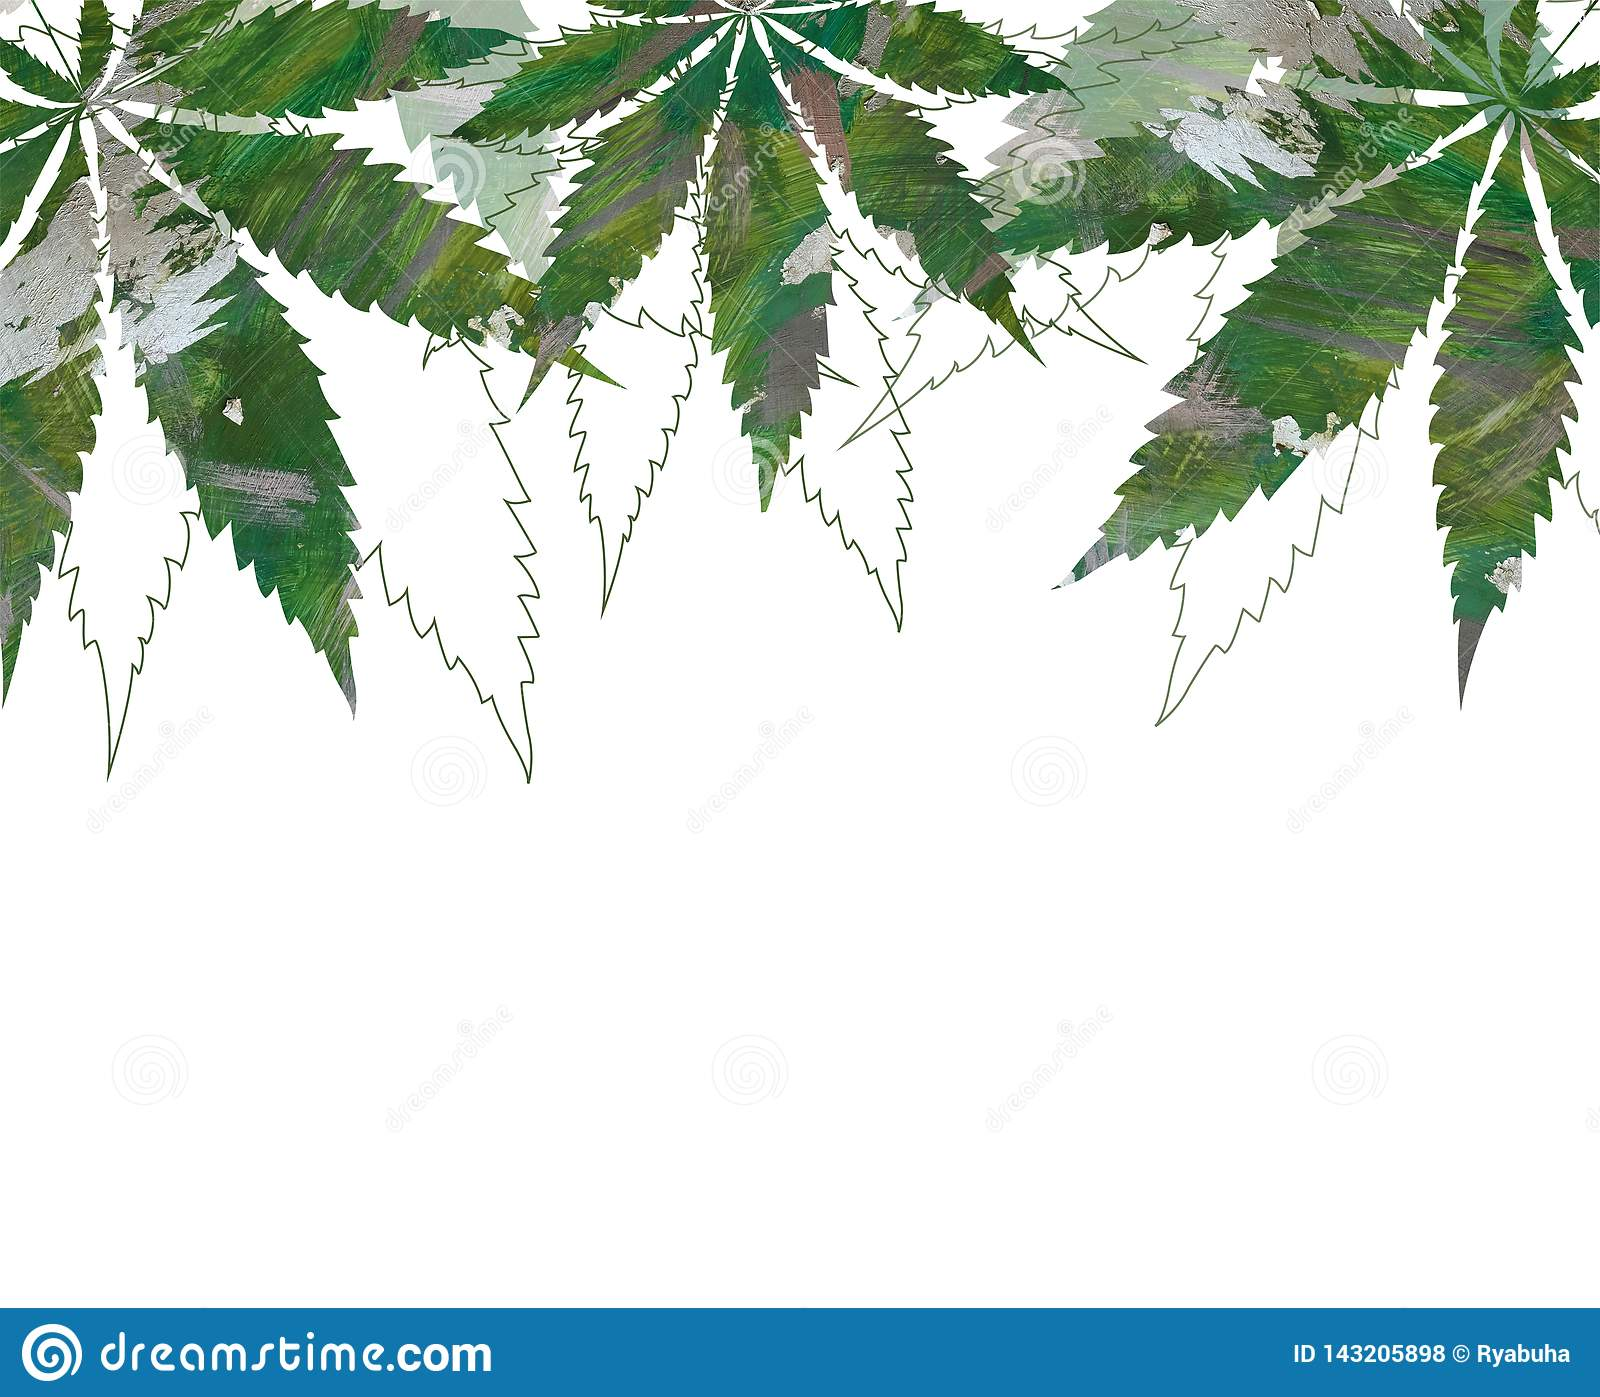 Card, template, banner hand drawing of leaves of hemp cannabis